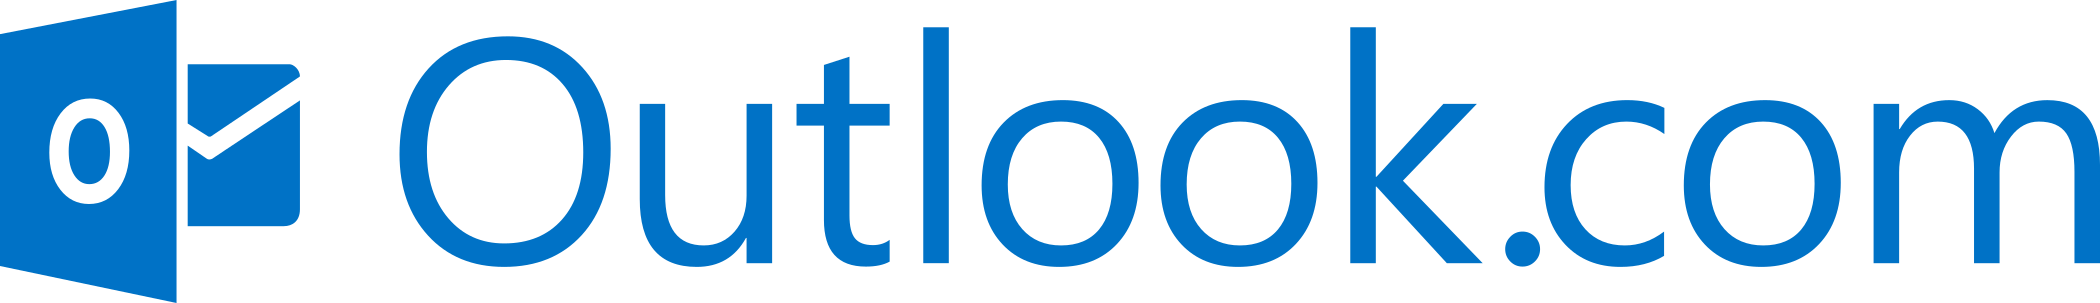 Outlook logo.